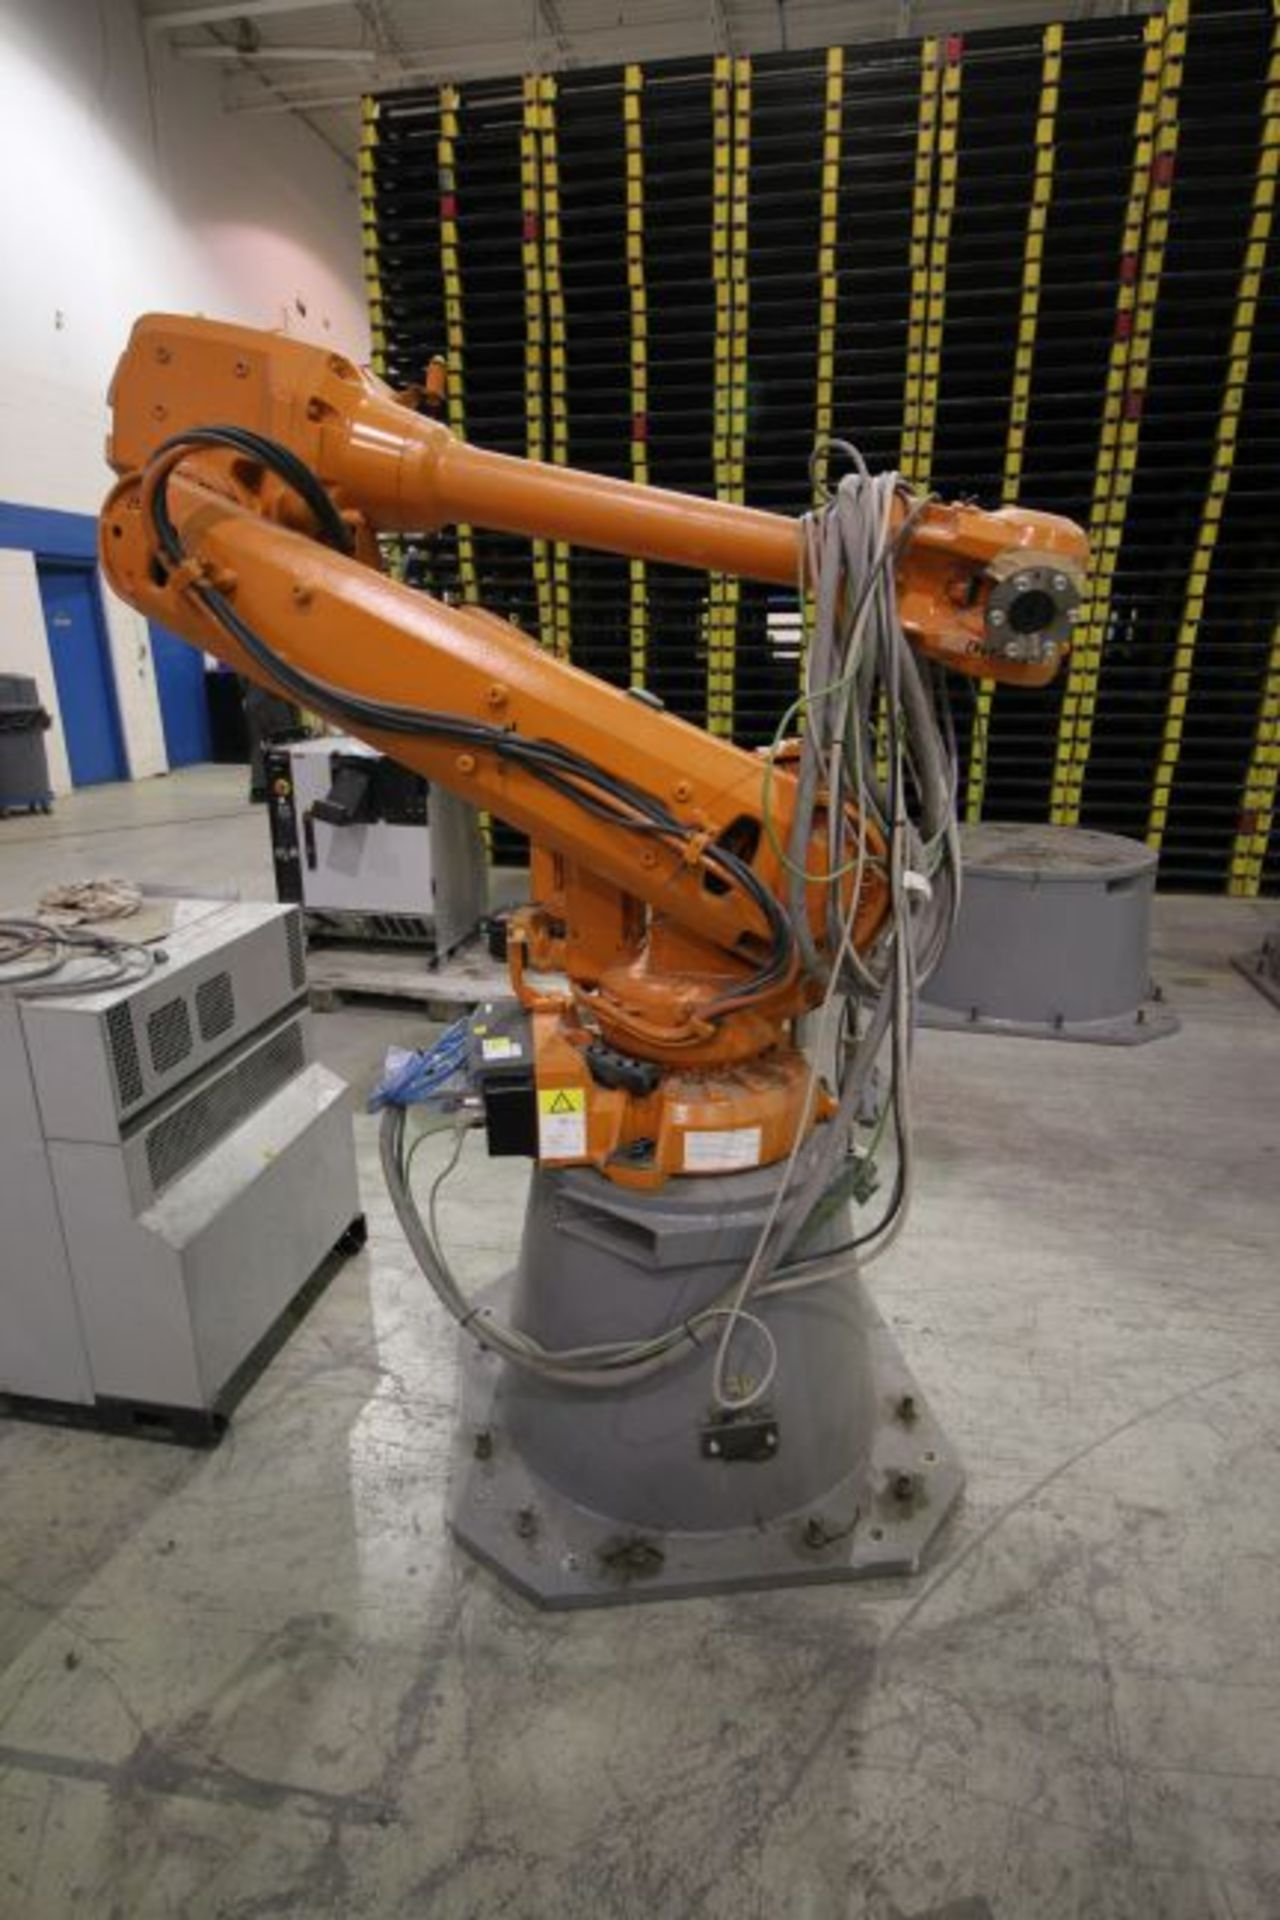 ABB ROBOT IRB 4600 2.55/40KG WITH IRC5 CONTROLS, YEAR 2014, SN 500798 TEACH PENDANT& CABLES